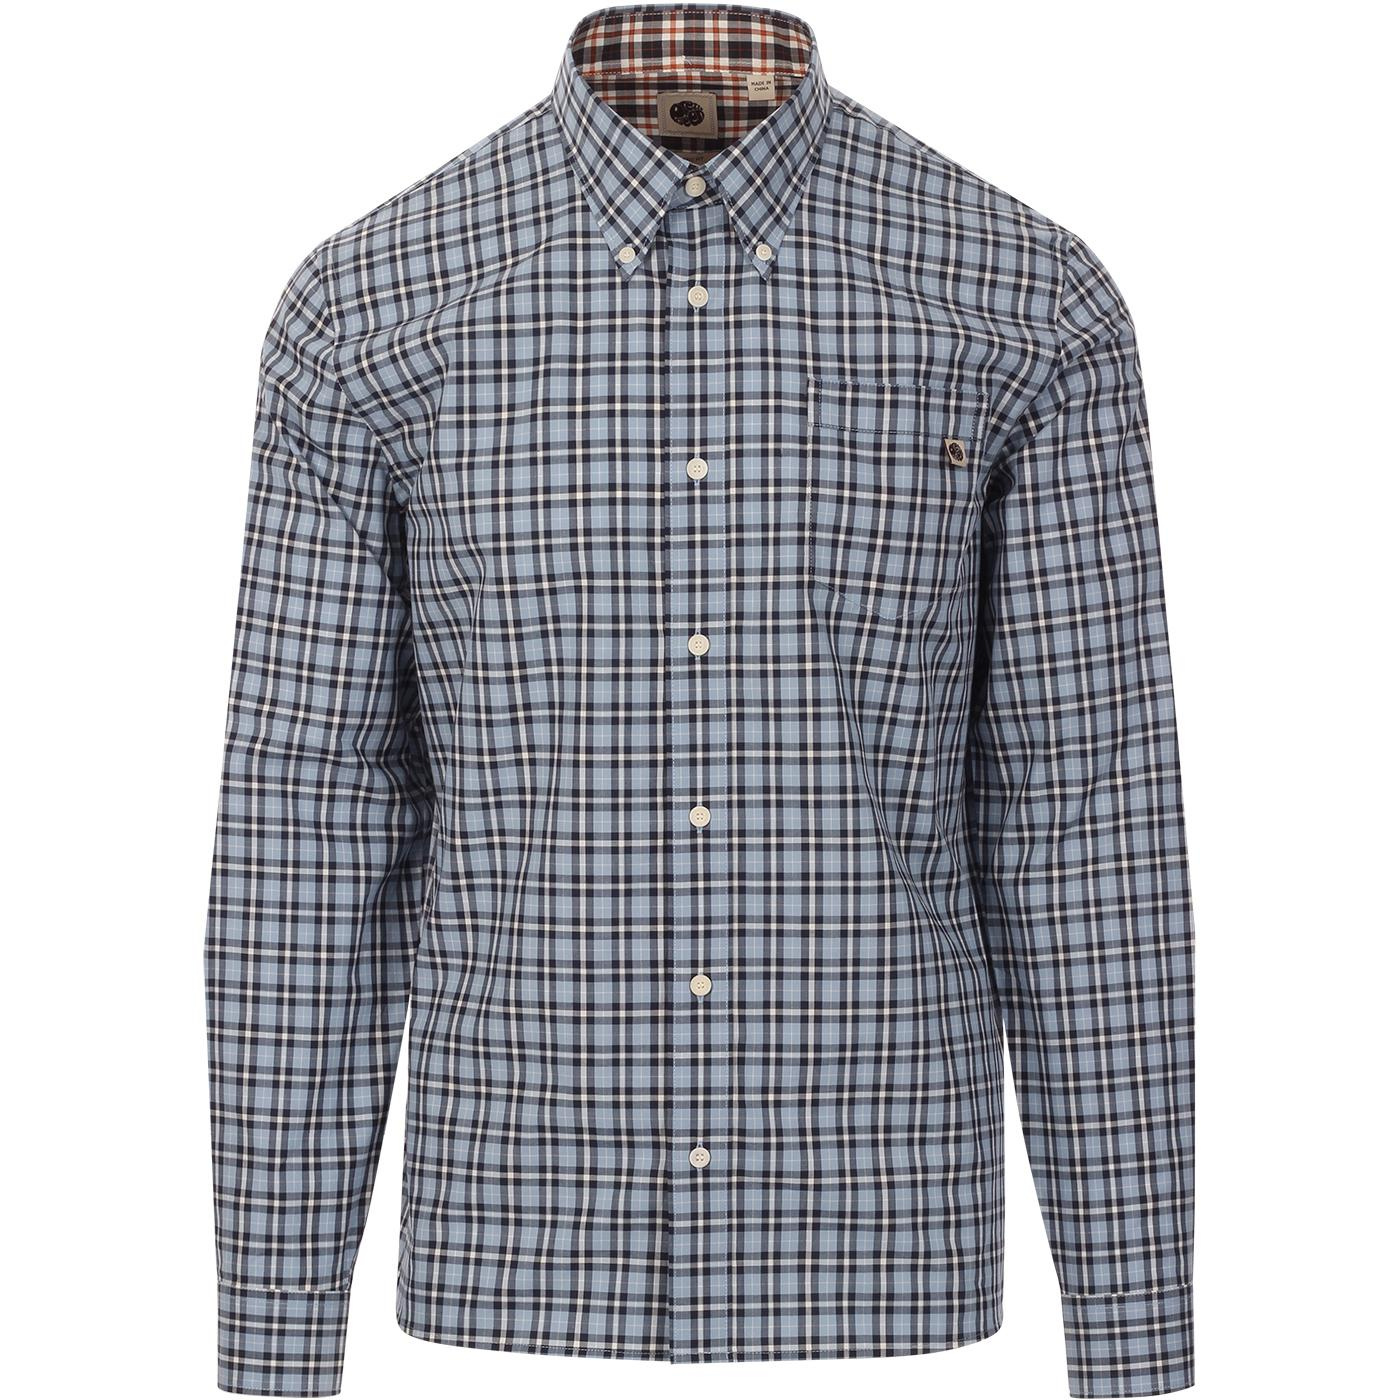 PRETTY GREEN Vintage Gingham Check Shirt In Navy